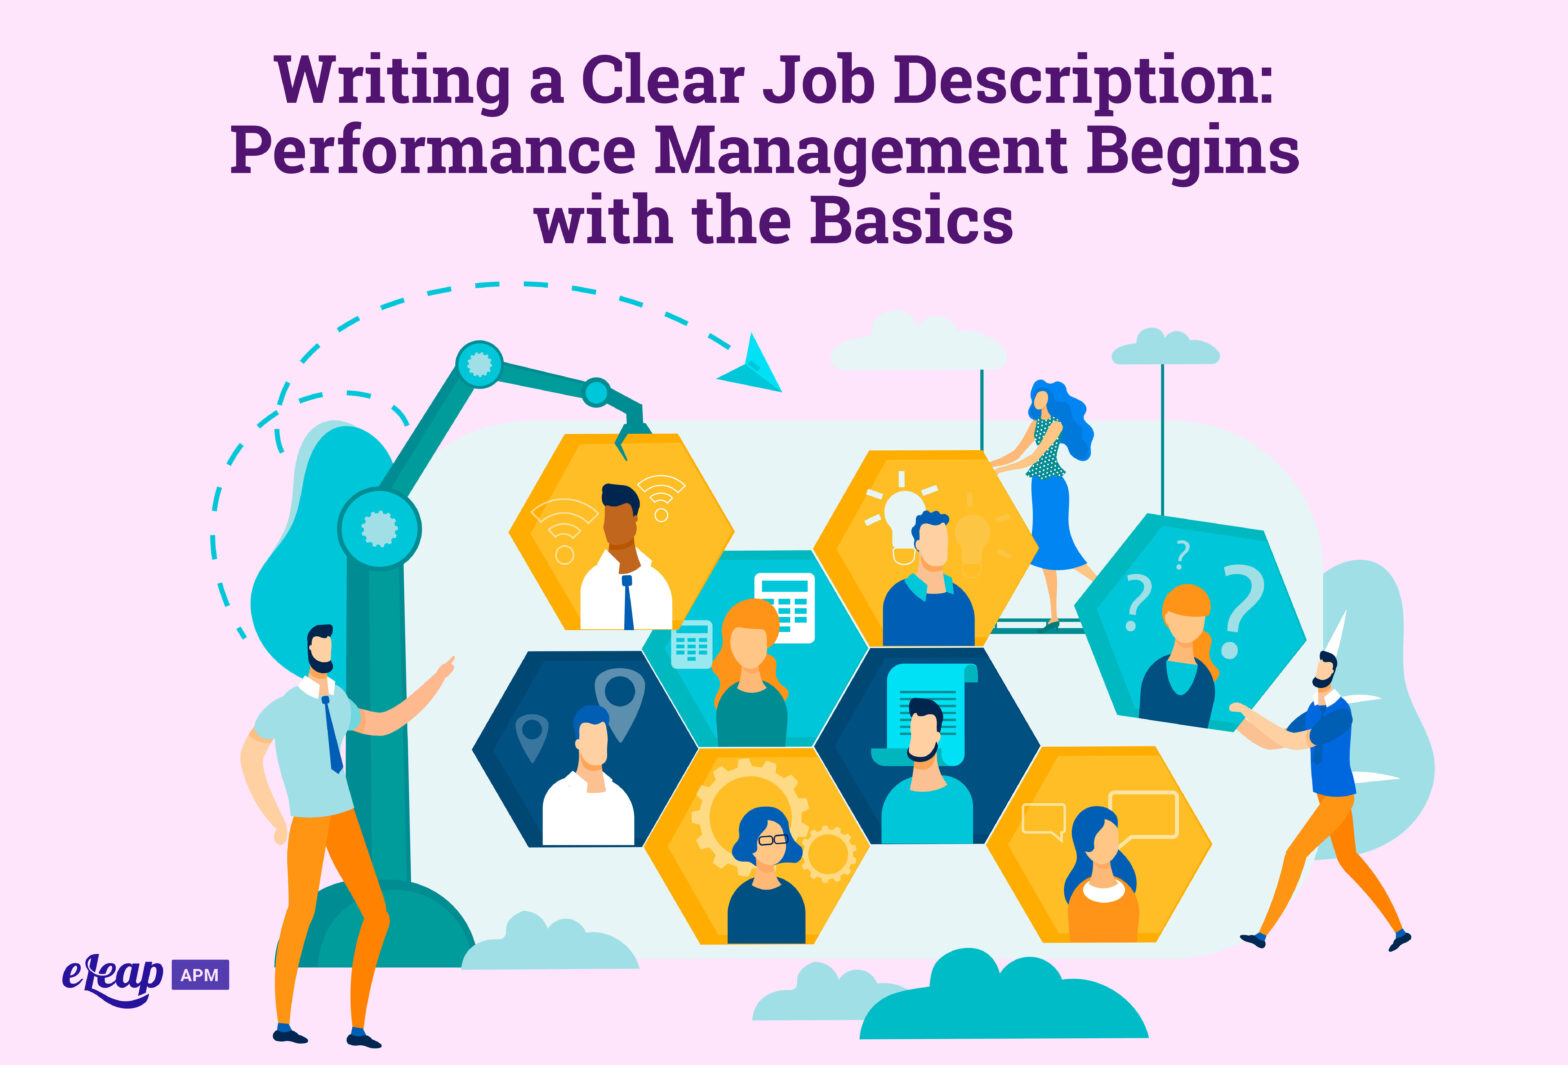 Writing a Clear Job Description: Performance Management Begins with the Basics